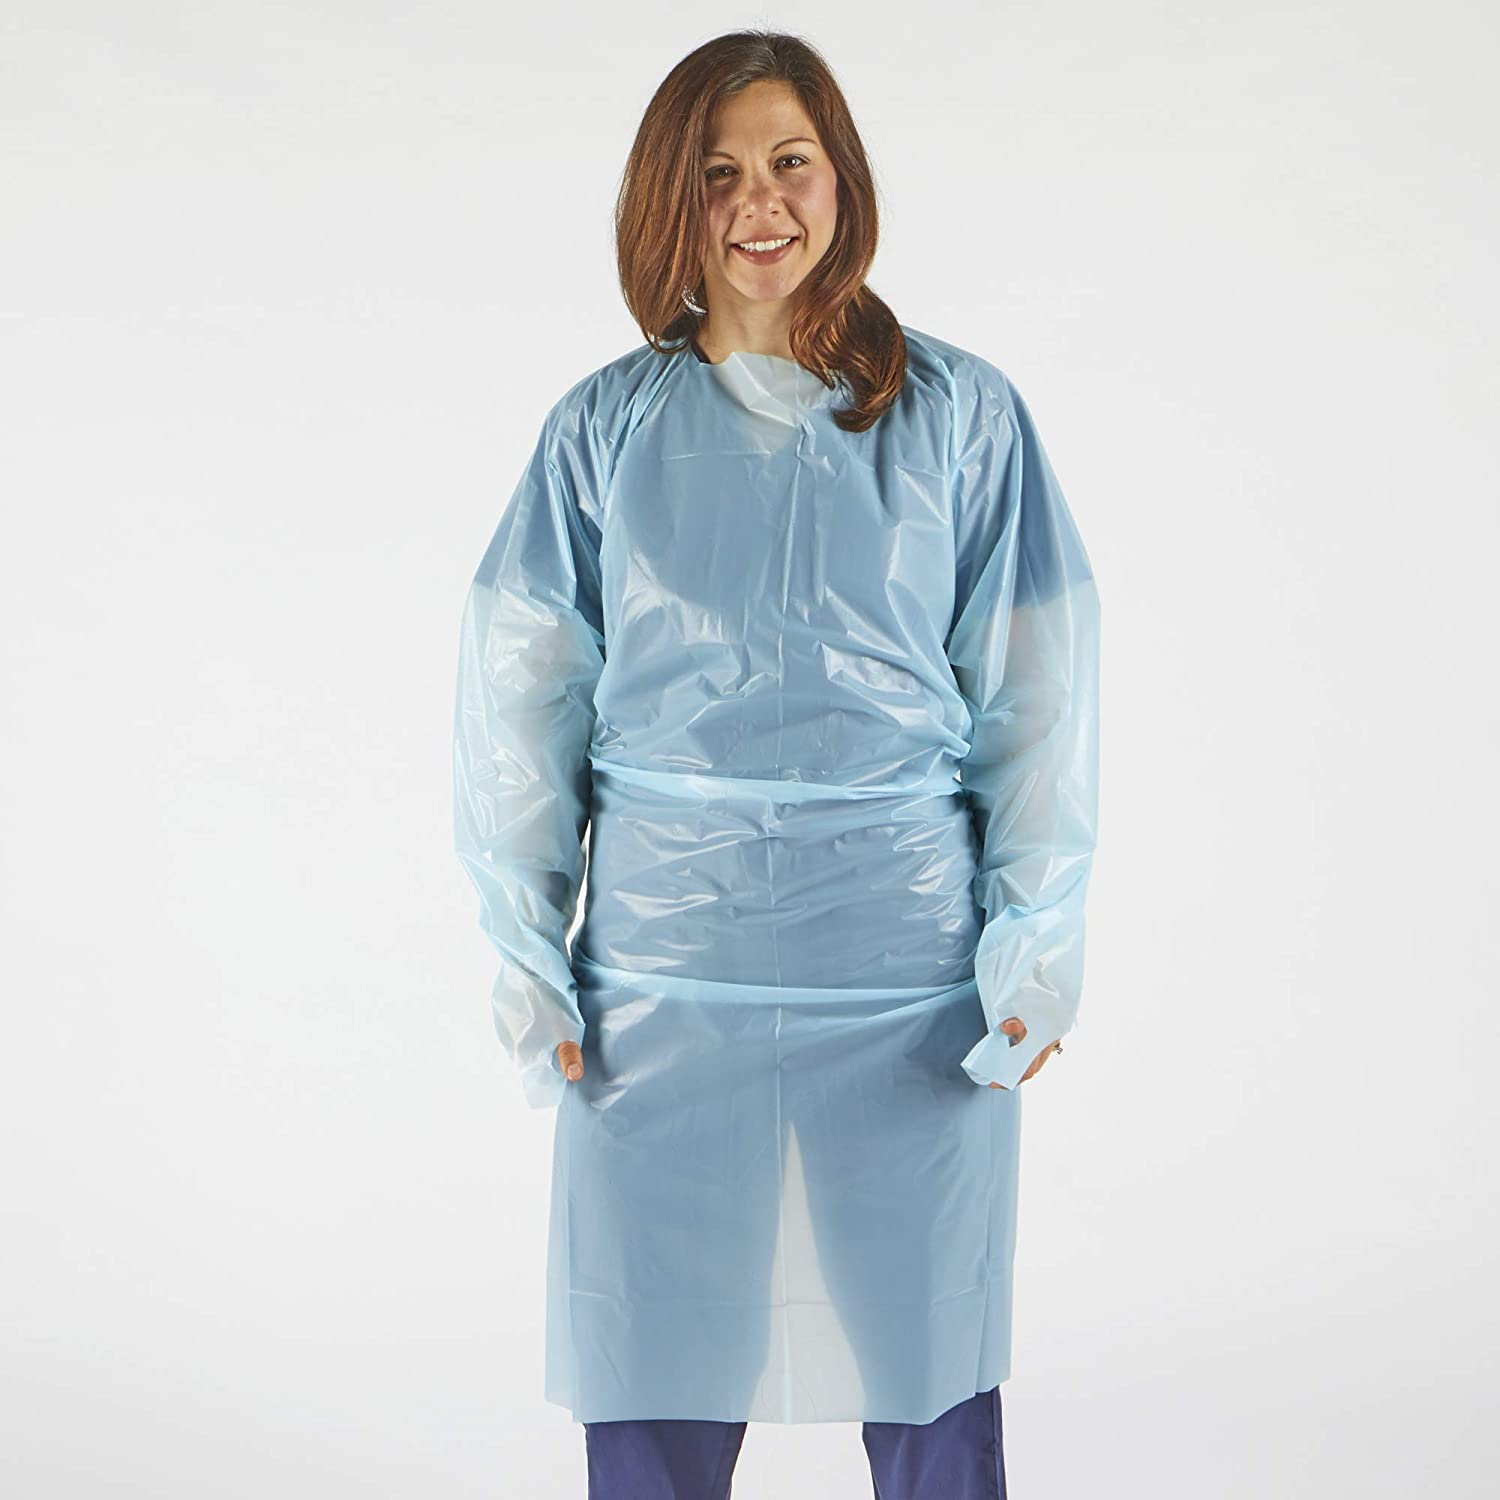 Generise Fluid Resistant Isolation Gown - Blue, Medical by Generise